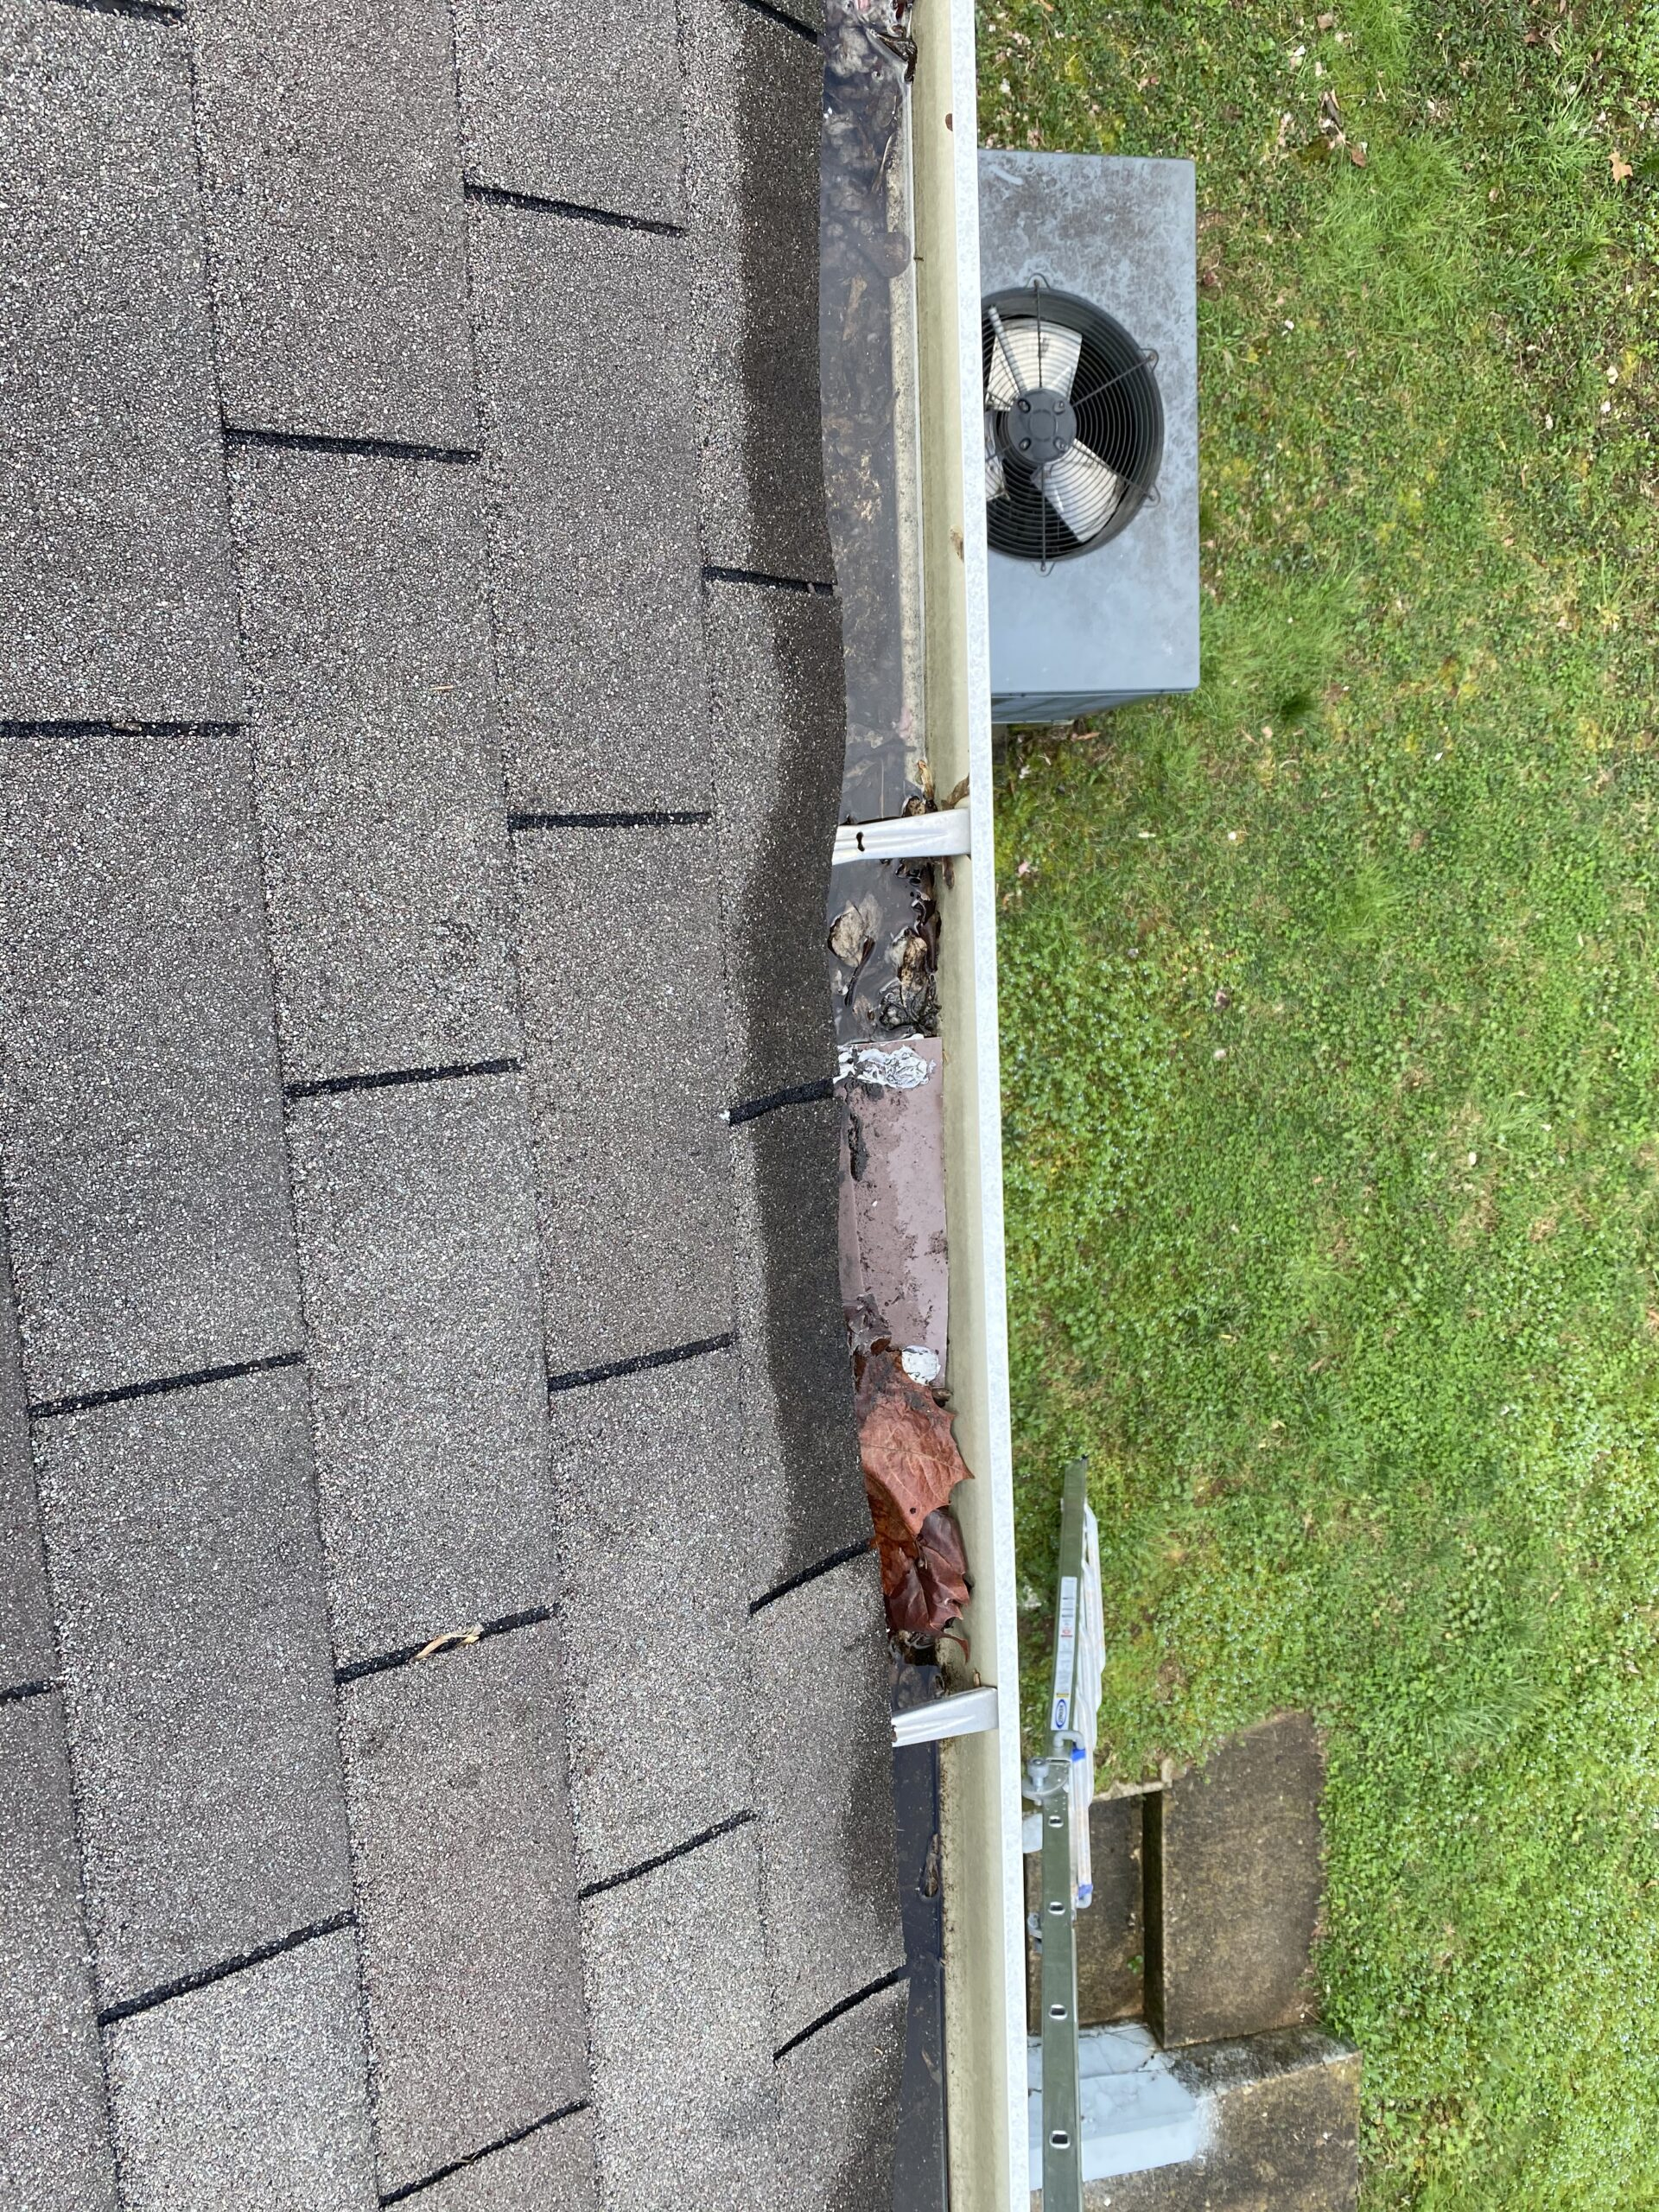 This is a picture of the edge of a roof where water sits at the shingles